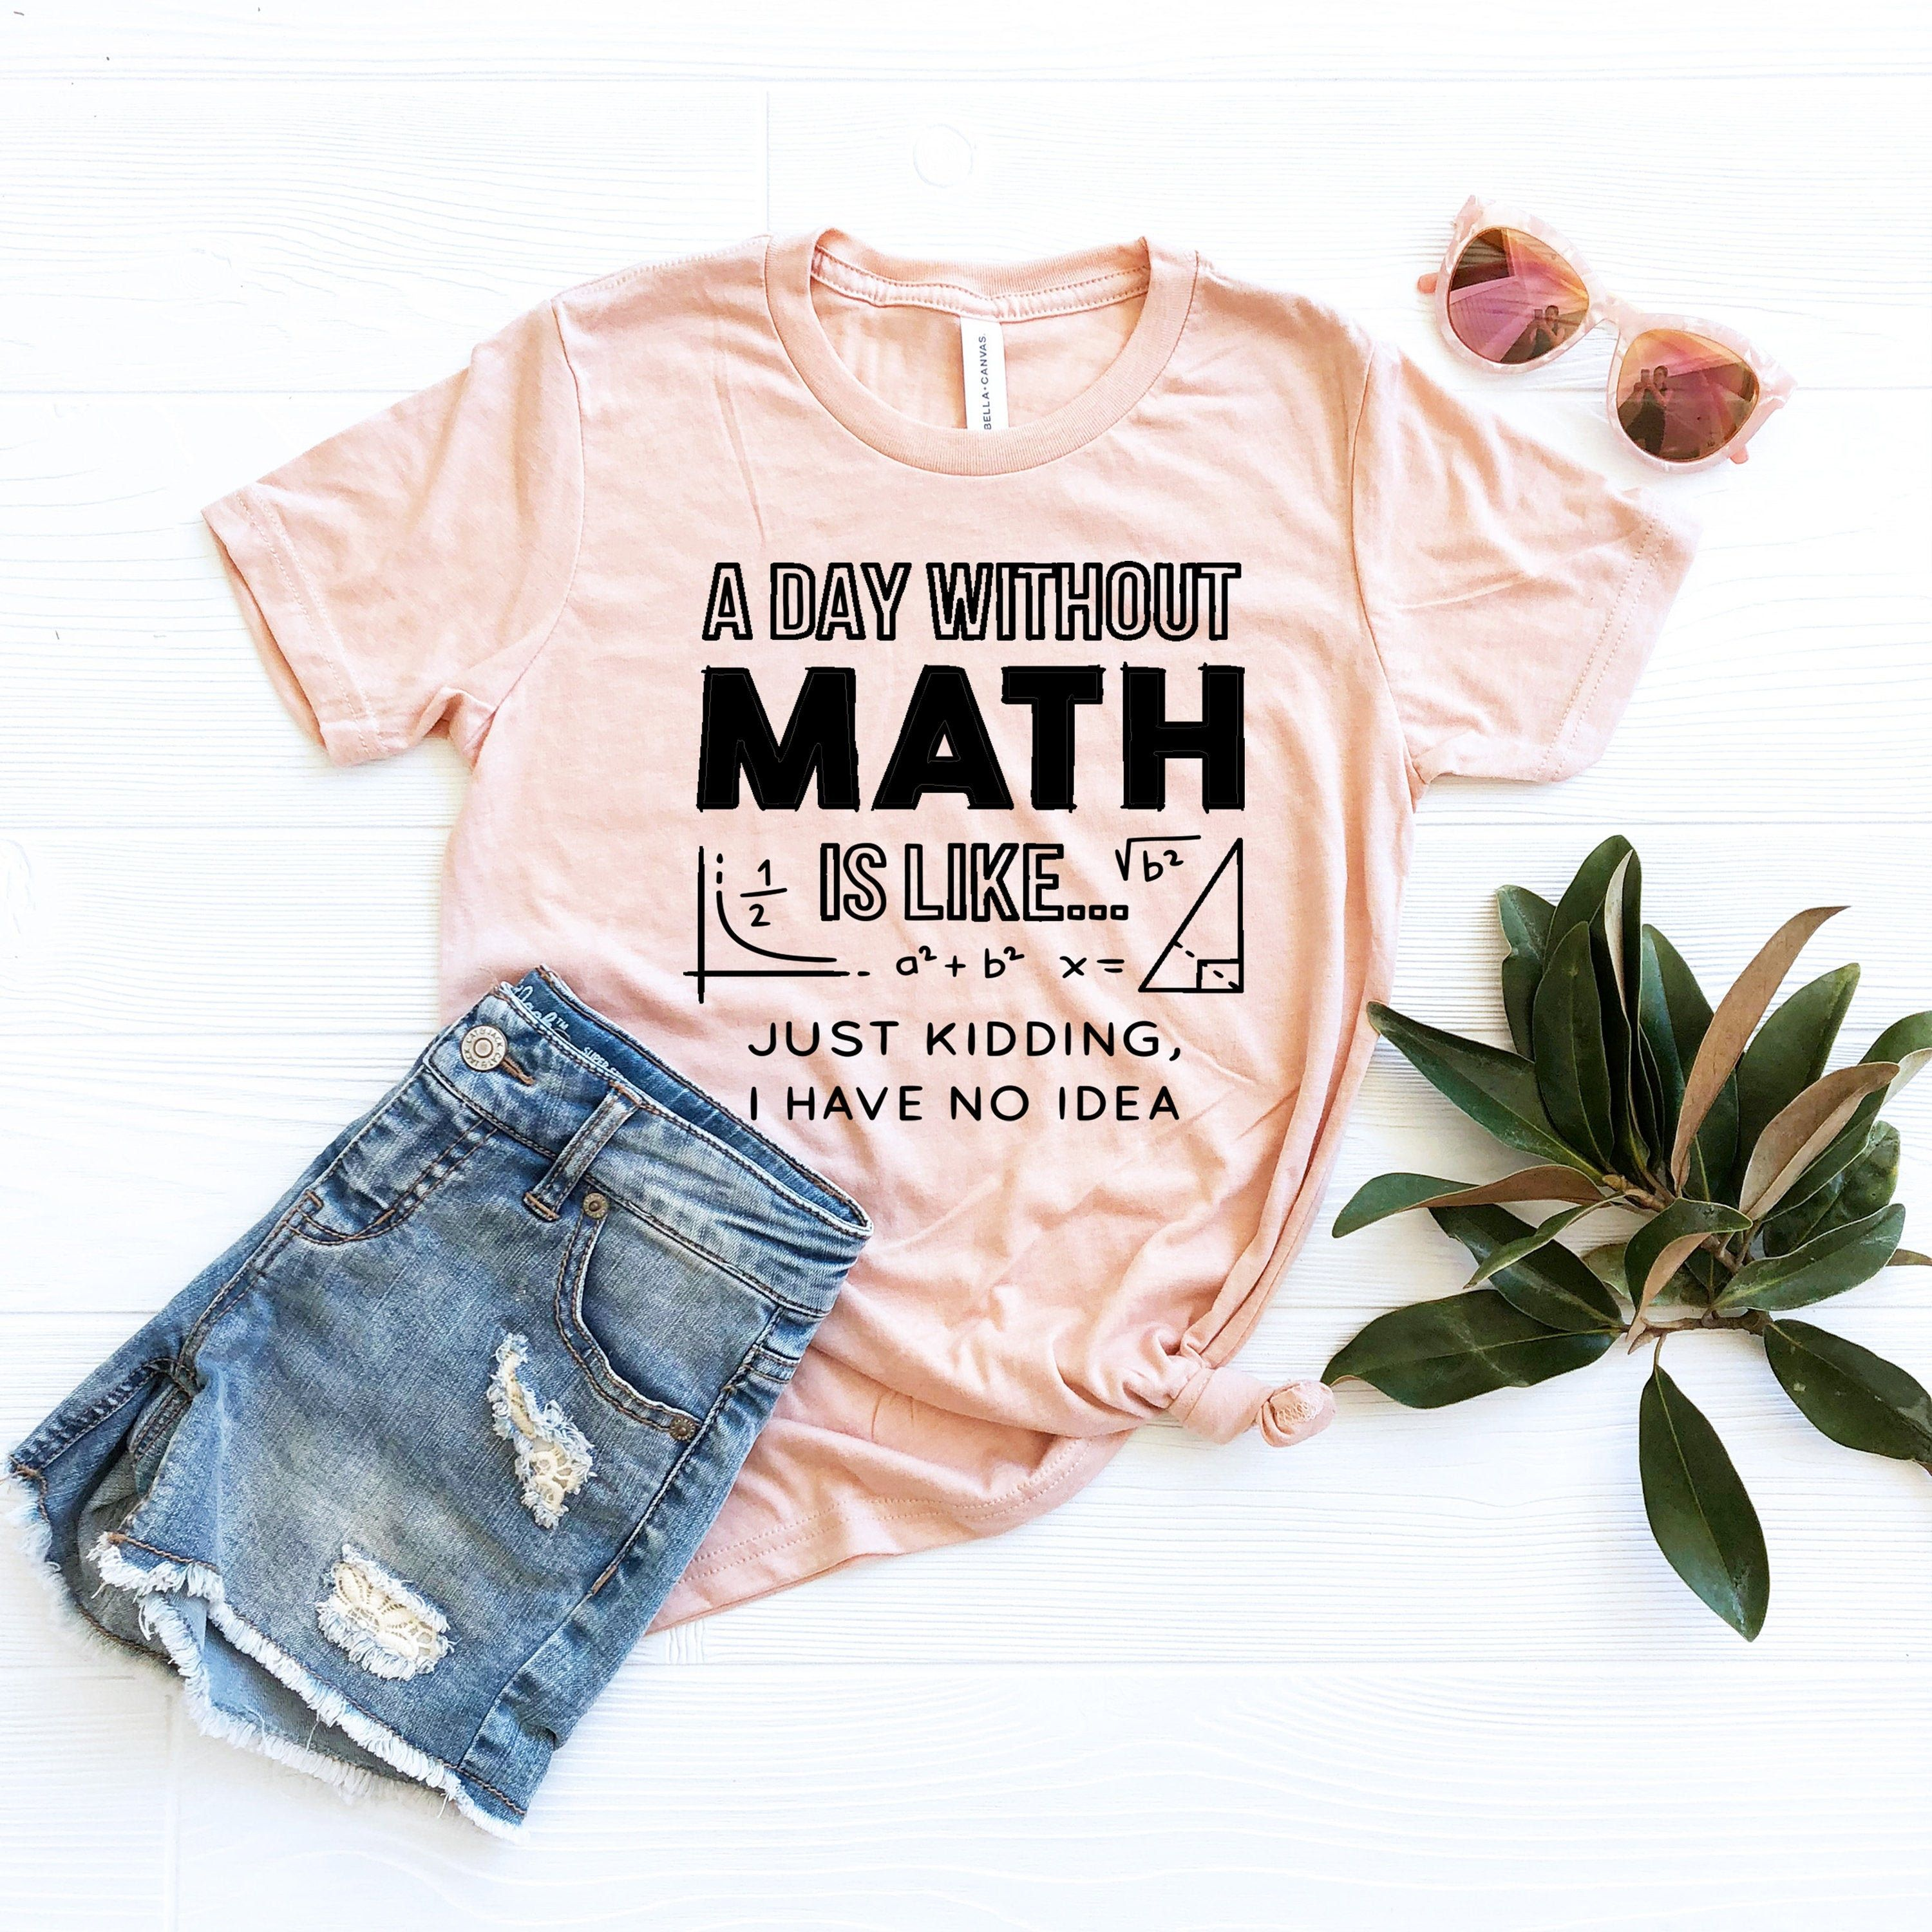 Day Without Math Shirt, Math Lover Gift, Math Teacher T-shirt, Math Geek Shirts, School Math Lover Tees, Statistician Shirt HOW TO ORDER 1-Choose your t-shirt size. 2-Choose your t-shirt color. 3-Type your design color (BLACK or WHITE) 4-Select the quantity, 5- Click Add To Cart. For multiple items go back to the listing and repeat the steps. PRODUCT 100% Airlume combed and ring-spun cotton, 32 single 4.2 oz. (Ash - 99% Airlume combed and ring-spun cotton, 1% poly) CARE INSTRUCTIONS Wash item in